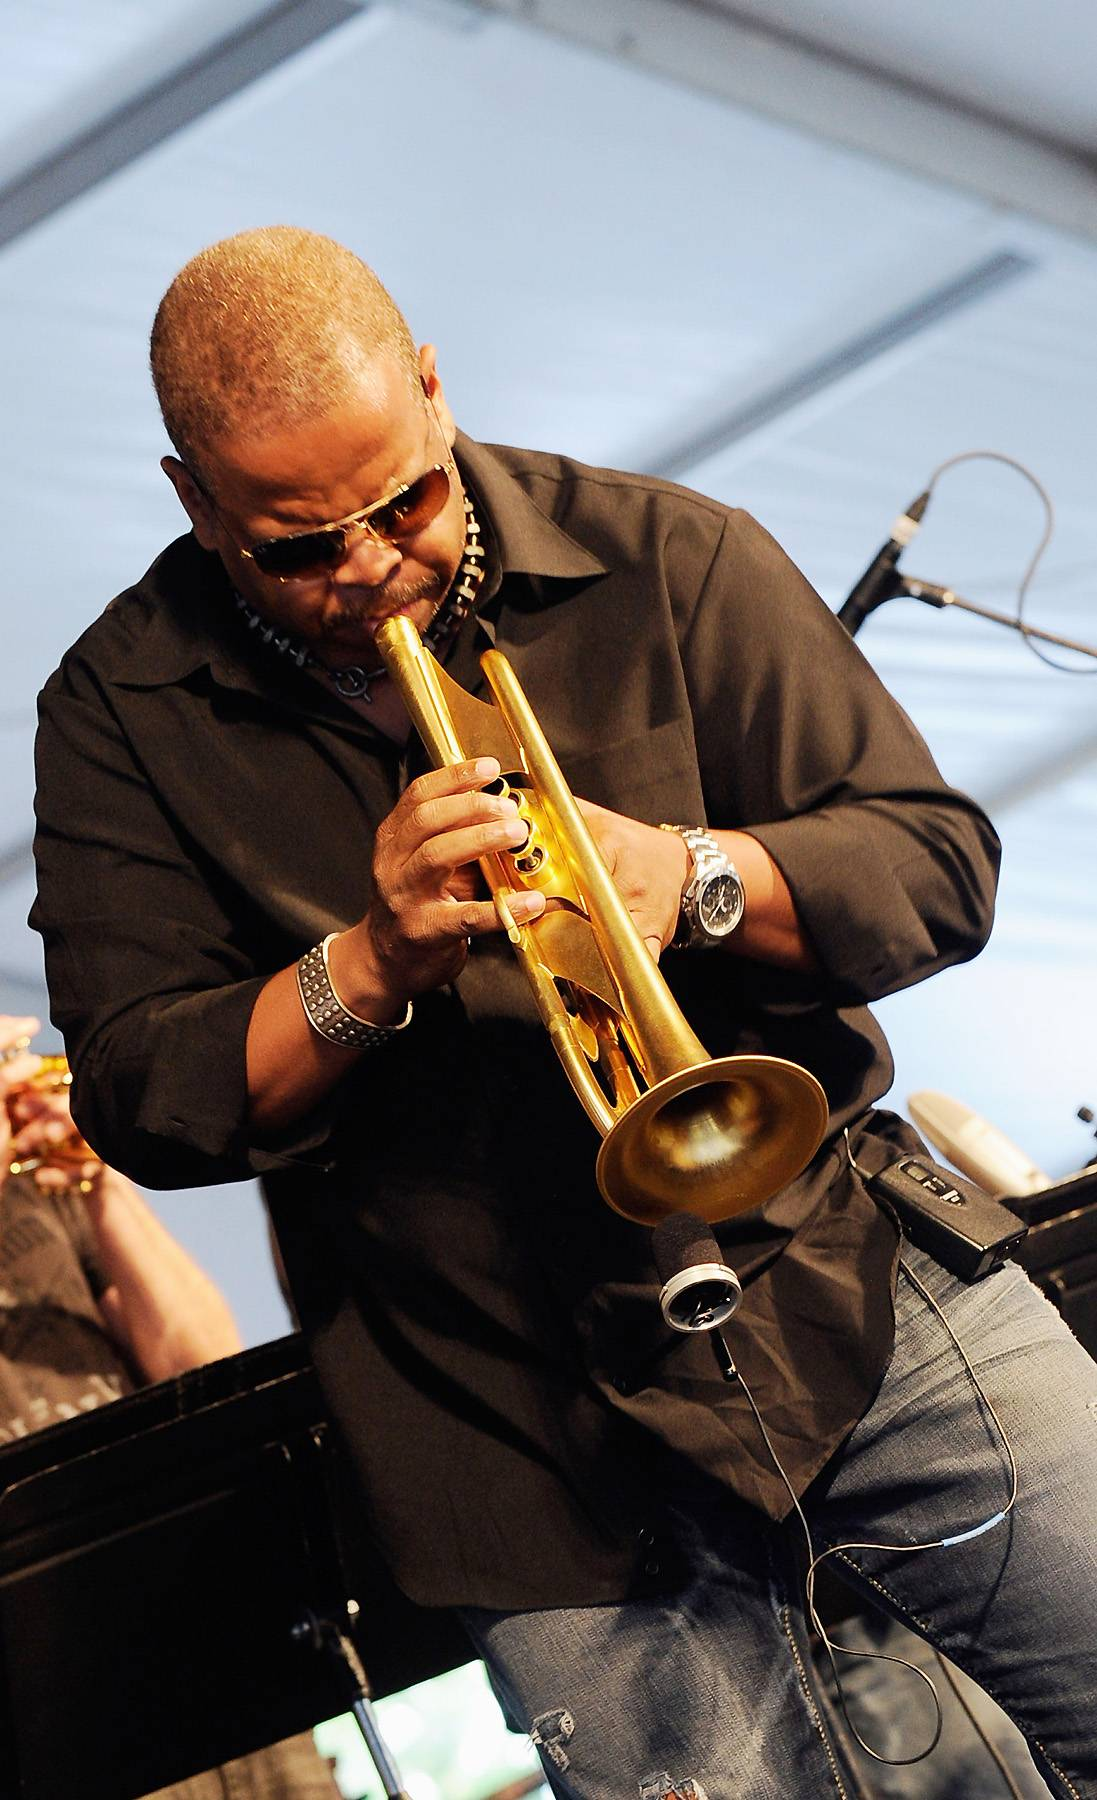 """Best Traditional Jazz Performance:Terrence Blanchard - """"Pet Step Sister?s Theme Song"""" - Blanchard and his stellar band, including drummer Kendrick Scott and Cuban pianist Fabian Almazon and saxophonist Brice Winston get things moving with this swinging tune off his latest album, Magnetic.(Photo: Rick Diamond/Getty Images)"""